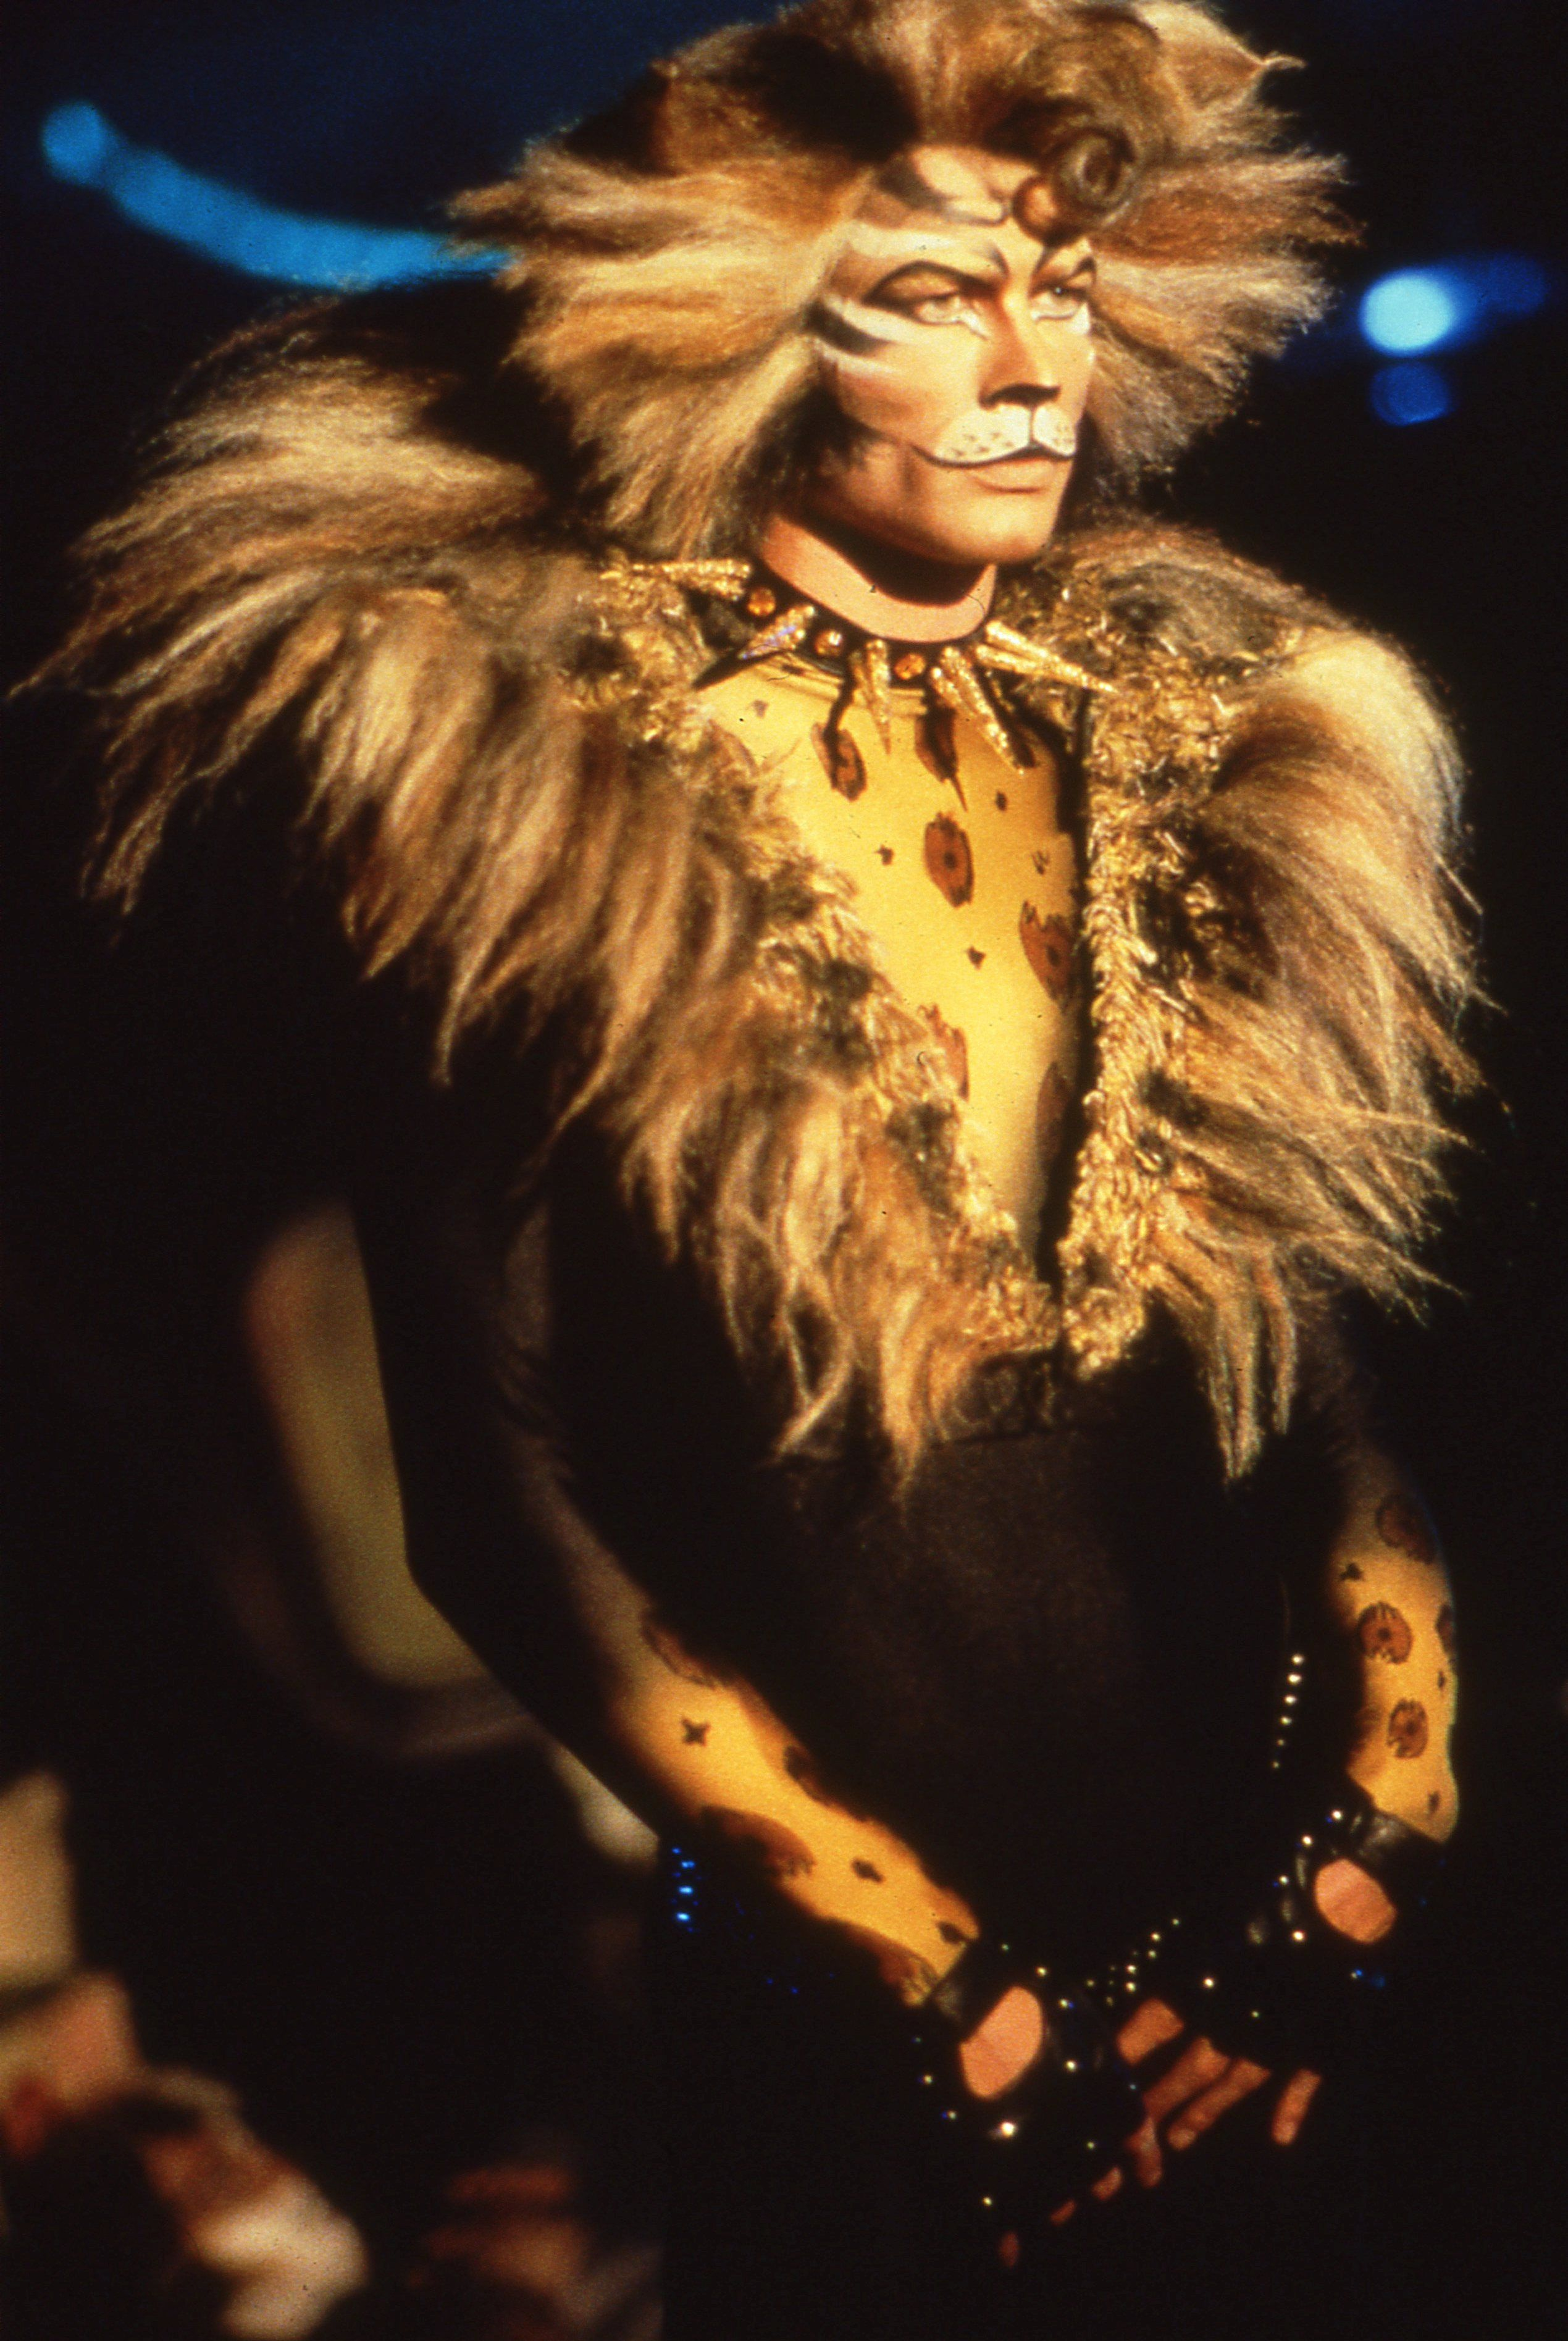 Rum Tum Tugger Cats The Musical Cats The Musical Costume